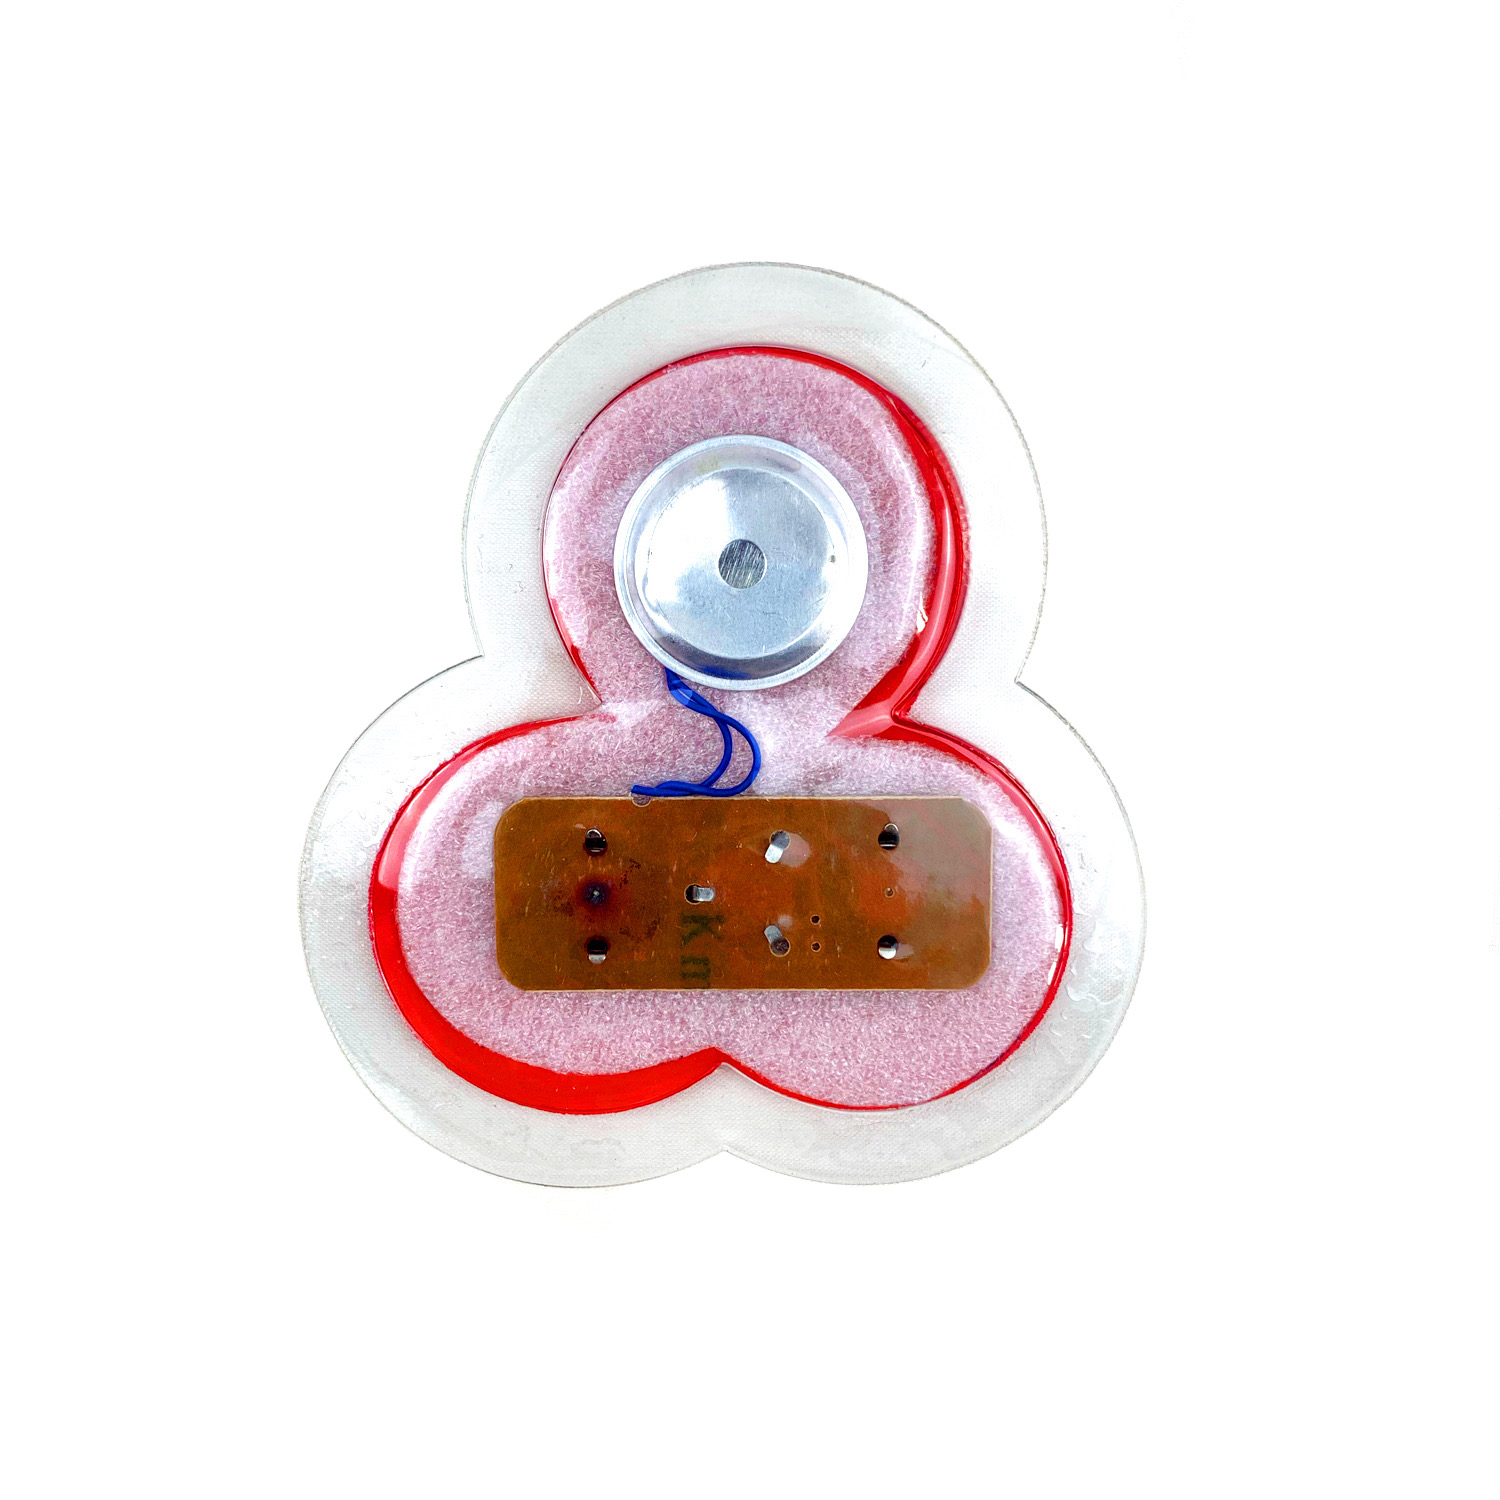 made in China high performance pre-recorded waterproof sound module for clothes